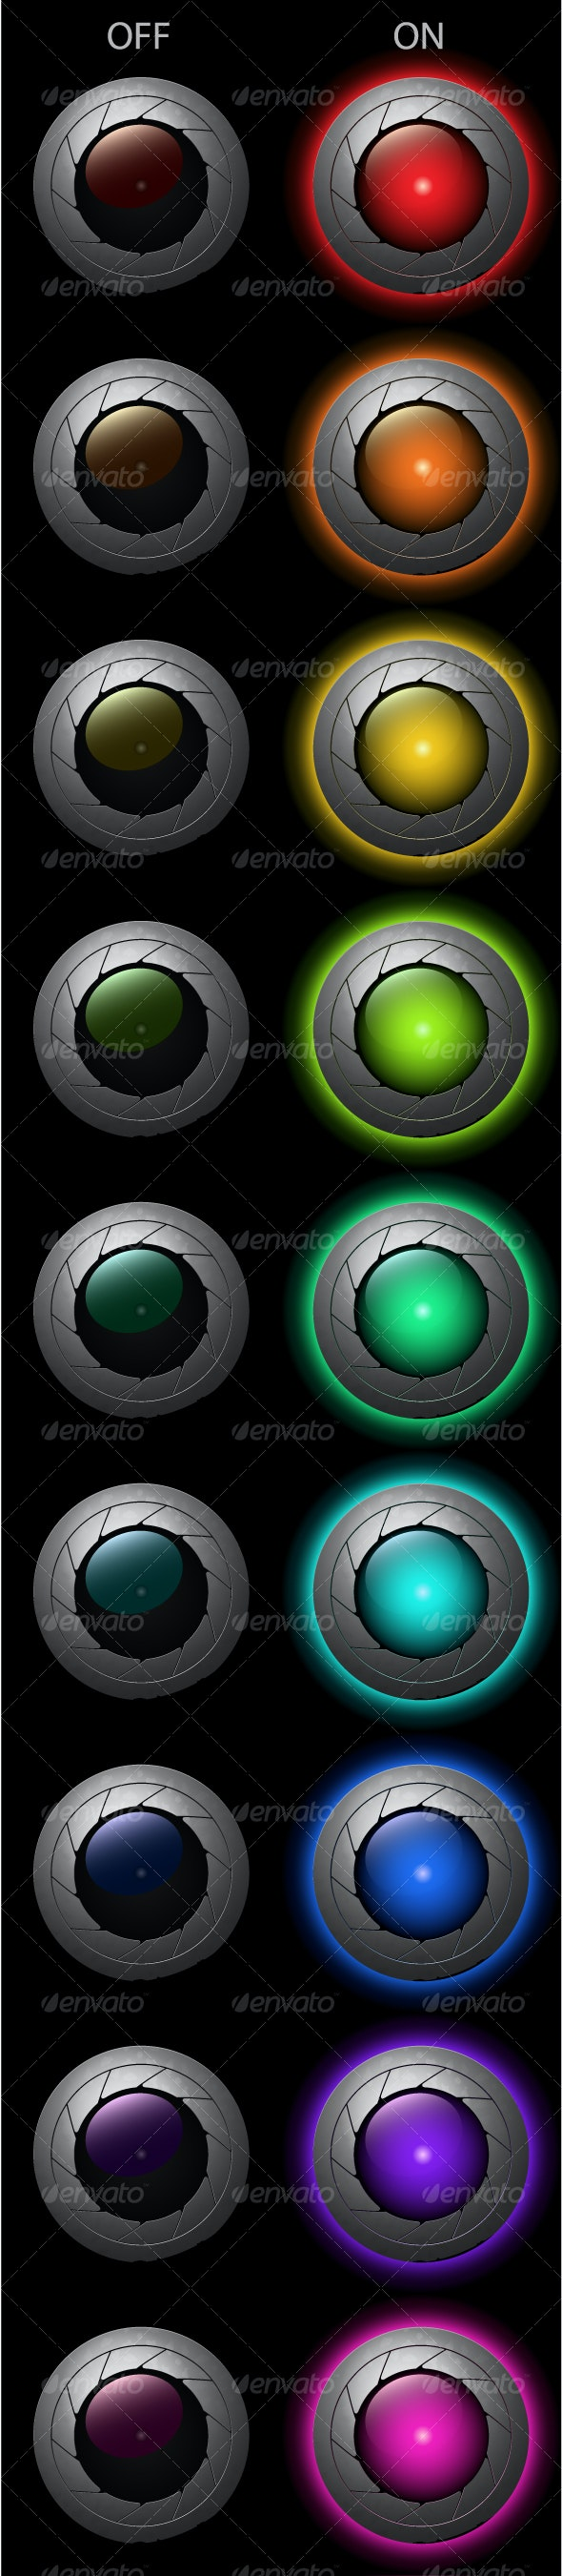 """set of """"on"""" and """"off"""" lights - Technology Conceptual"""